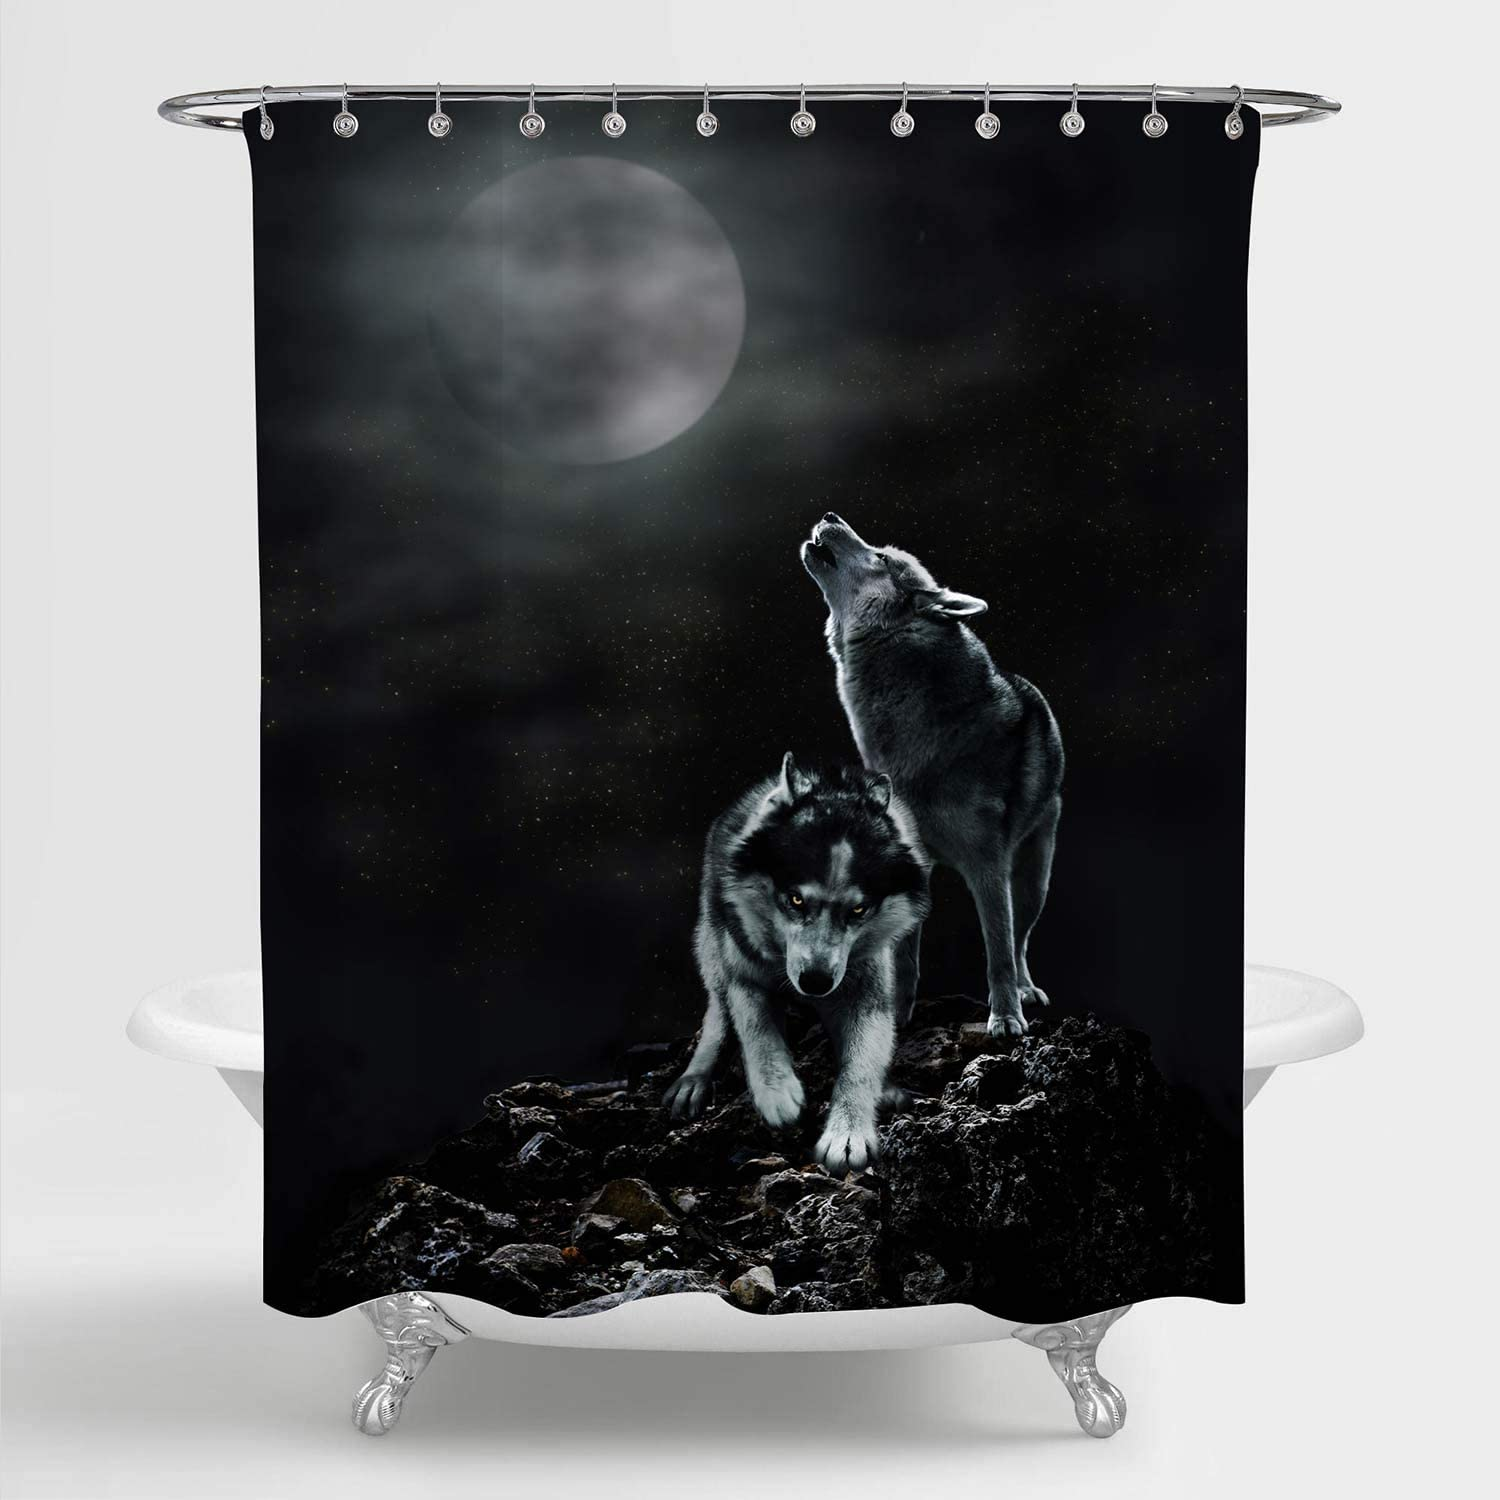 MitoVilla Howling Wolf Shower Curtain Set with Hooks for Black B